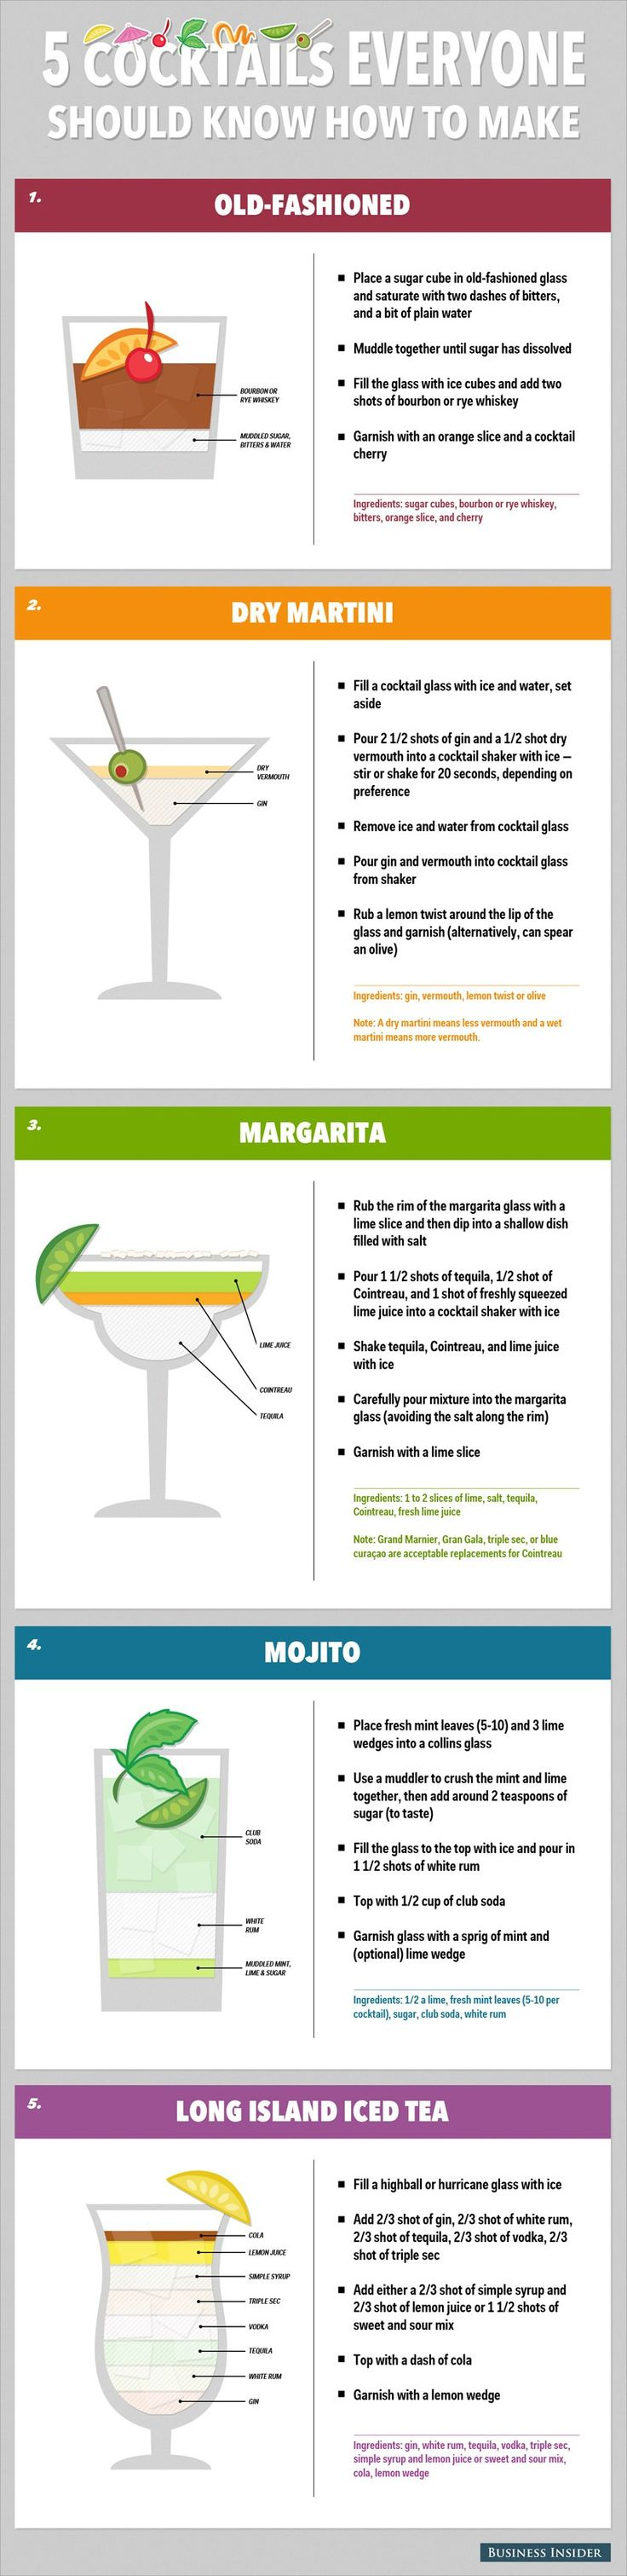 5 cocktails everyone should know how to make: Margarita, Martini, Mojito, Old Fashioned, Long Island